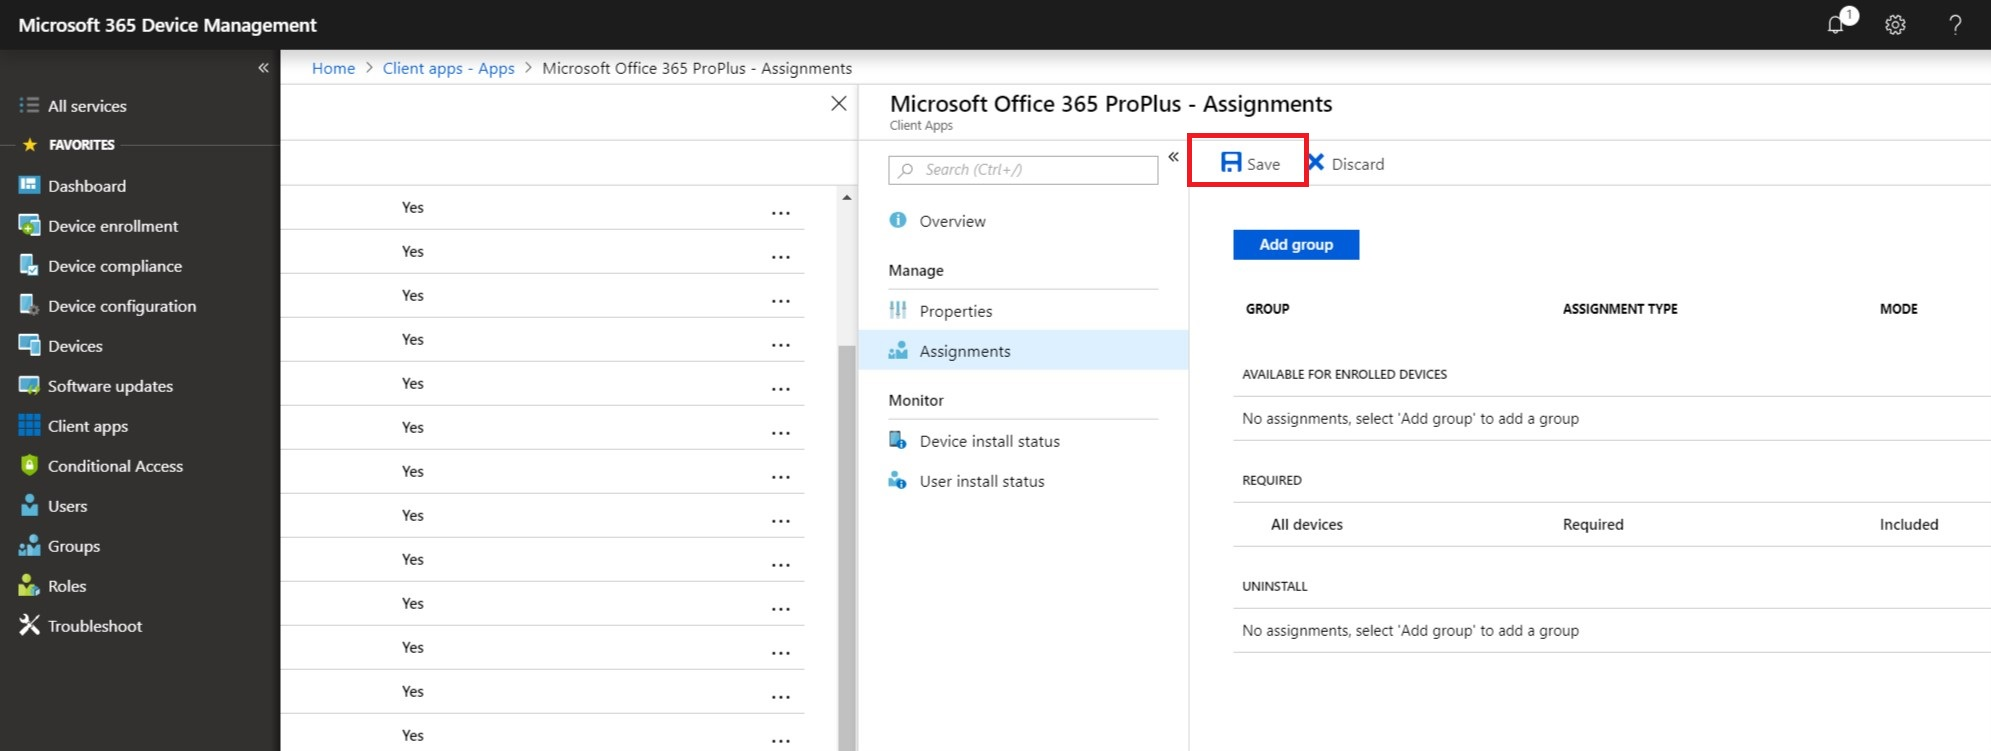 How to deploy the Microsoft Office 365 ProPlus Suite with Microsoft